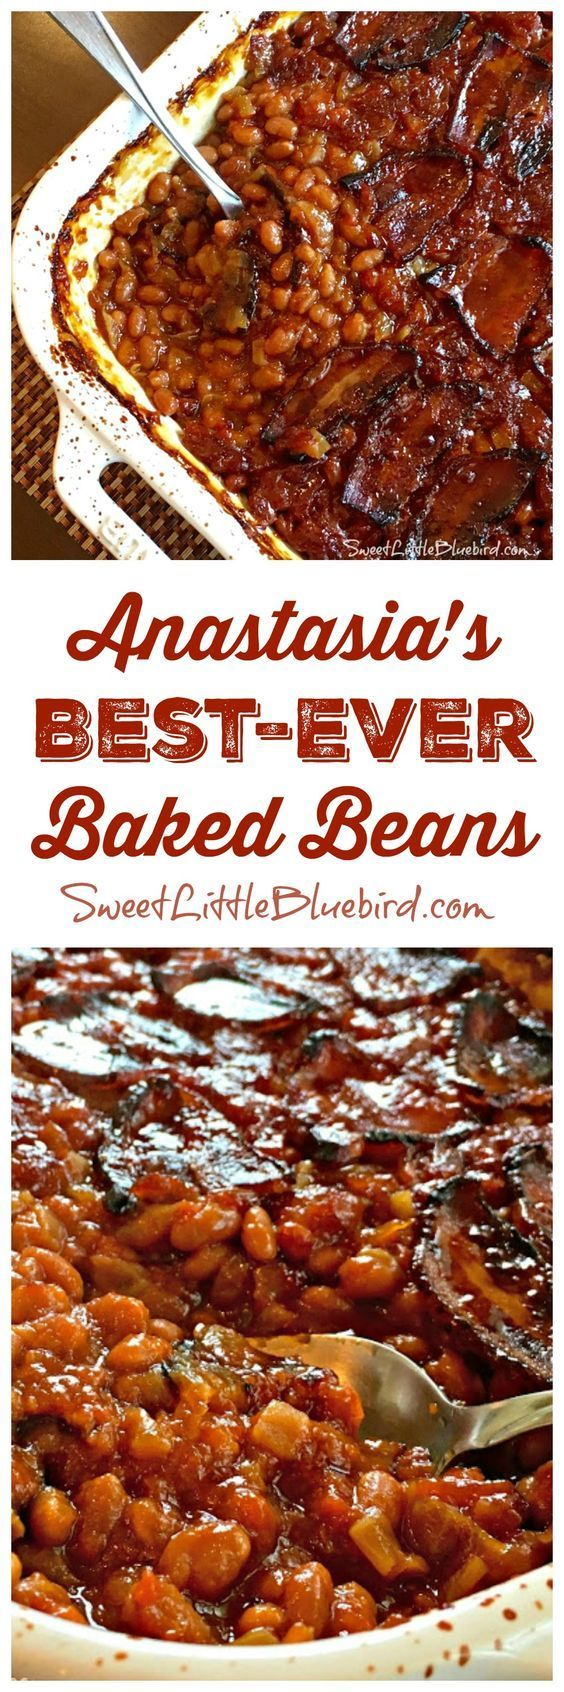 Today I am sharing my family's go-to baked beans recipe that has been in the family for decades - Anastasia's Best-Ever Baked Beans! These are a must-have at family barbecues! Simple to make, so darn good. Pork and beans with sauteed onions, molasses, brown sugar, ketchup, mustard, and bacon... a big ol' dish of comfort. Did I mention....bacon?!! These are the best stinkin' baked beans!! My sister always gets asked for the recipe when she brings this side dish to parties and gatherings..